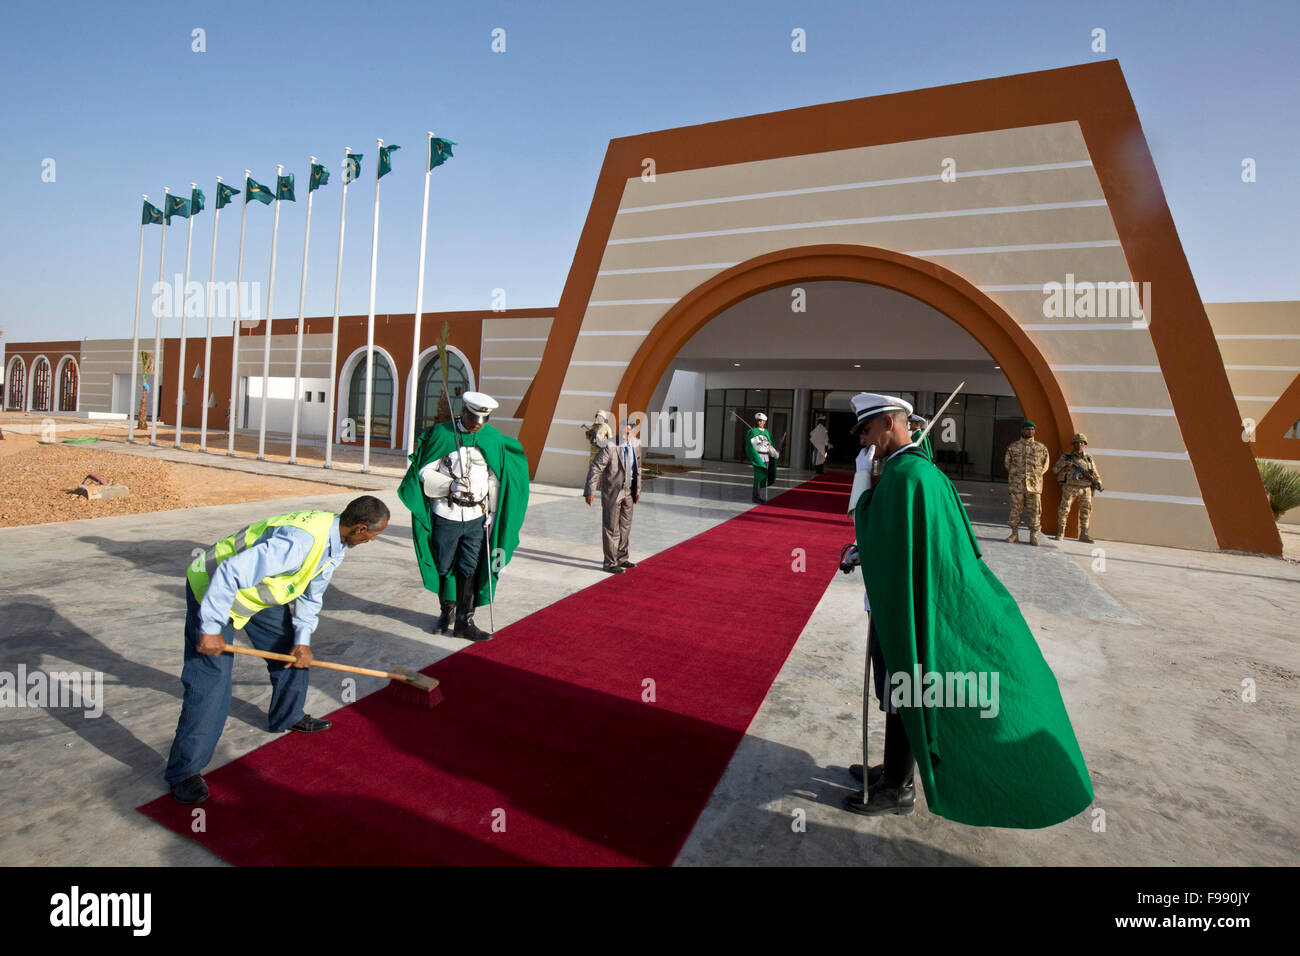 The new airport of Nouakchott-Oumtounsy will open in 2016, Mauritania - Stock Image